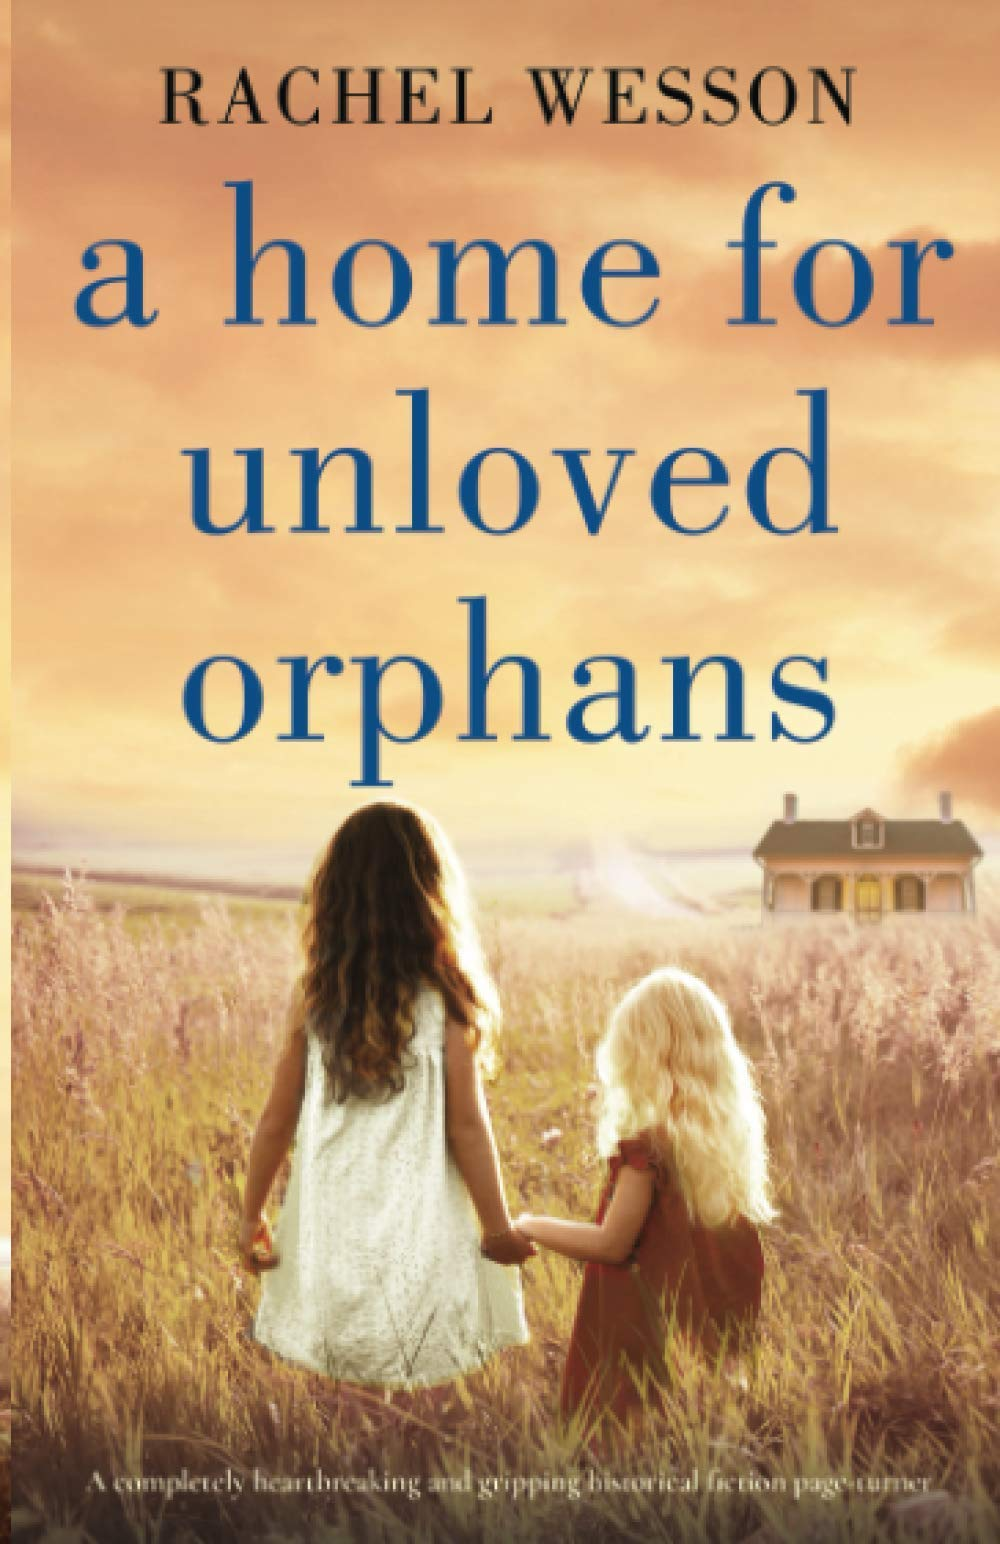 A Home for Unloved Orphans: A completely heartbreaking and gripping historical fiction page-turner